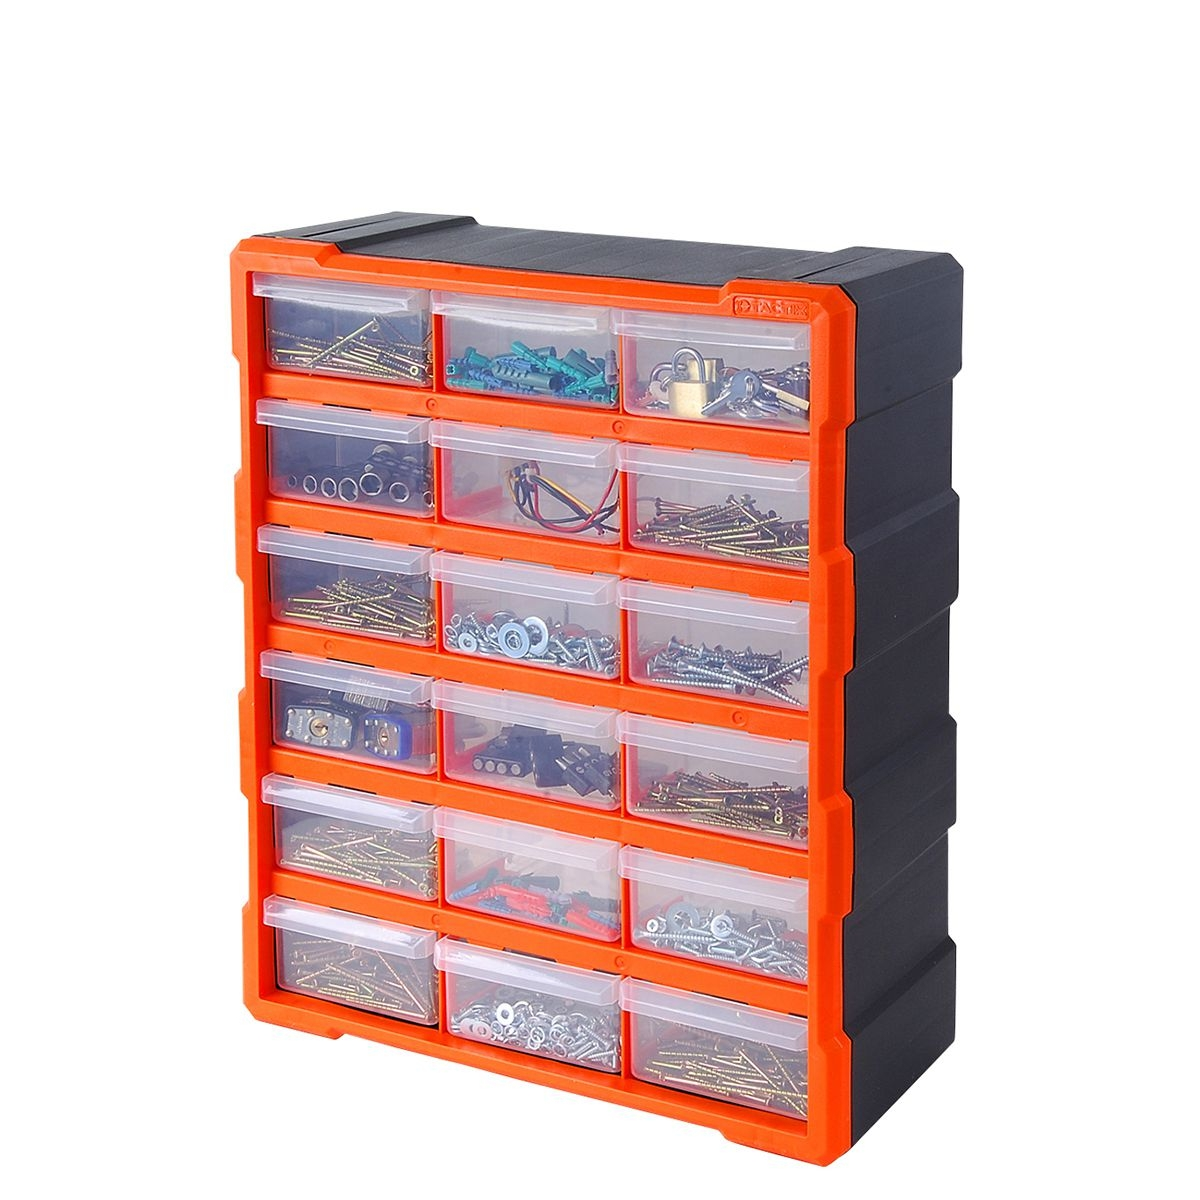 18 Storage Cabinet 18 Drawer Hardware Storage Cabinet Small Parts Storage From